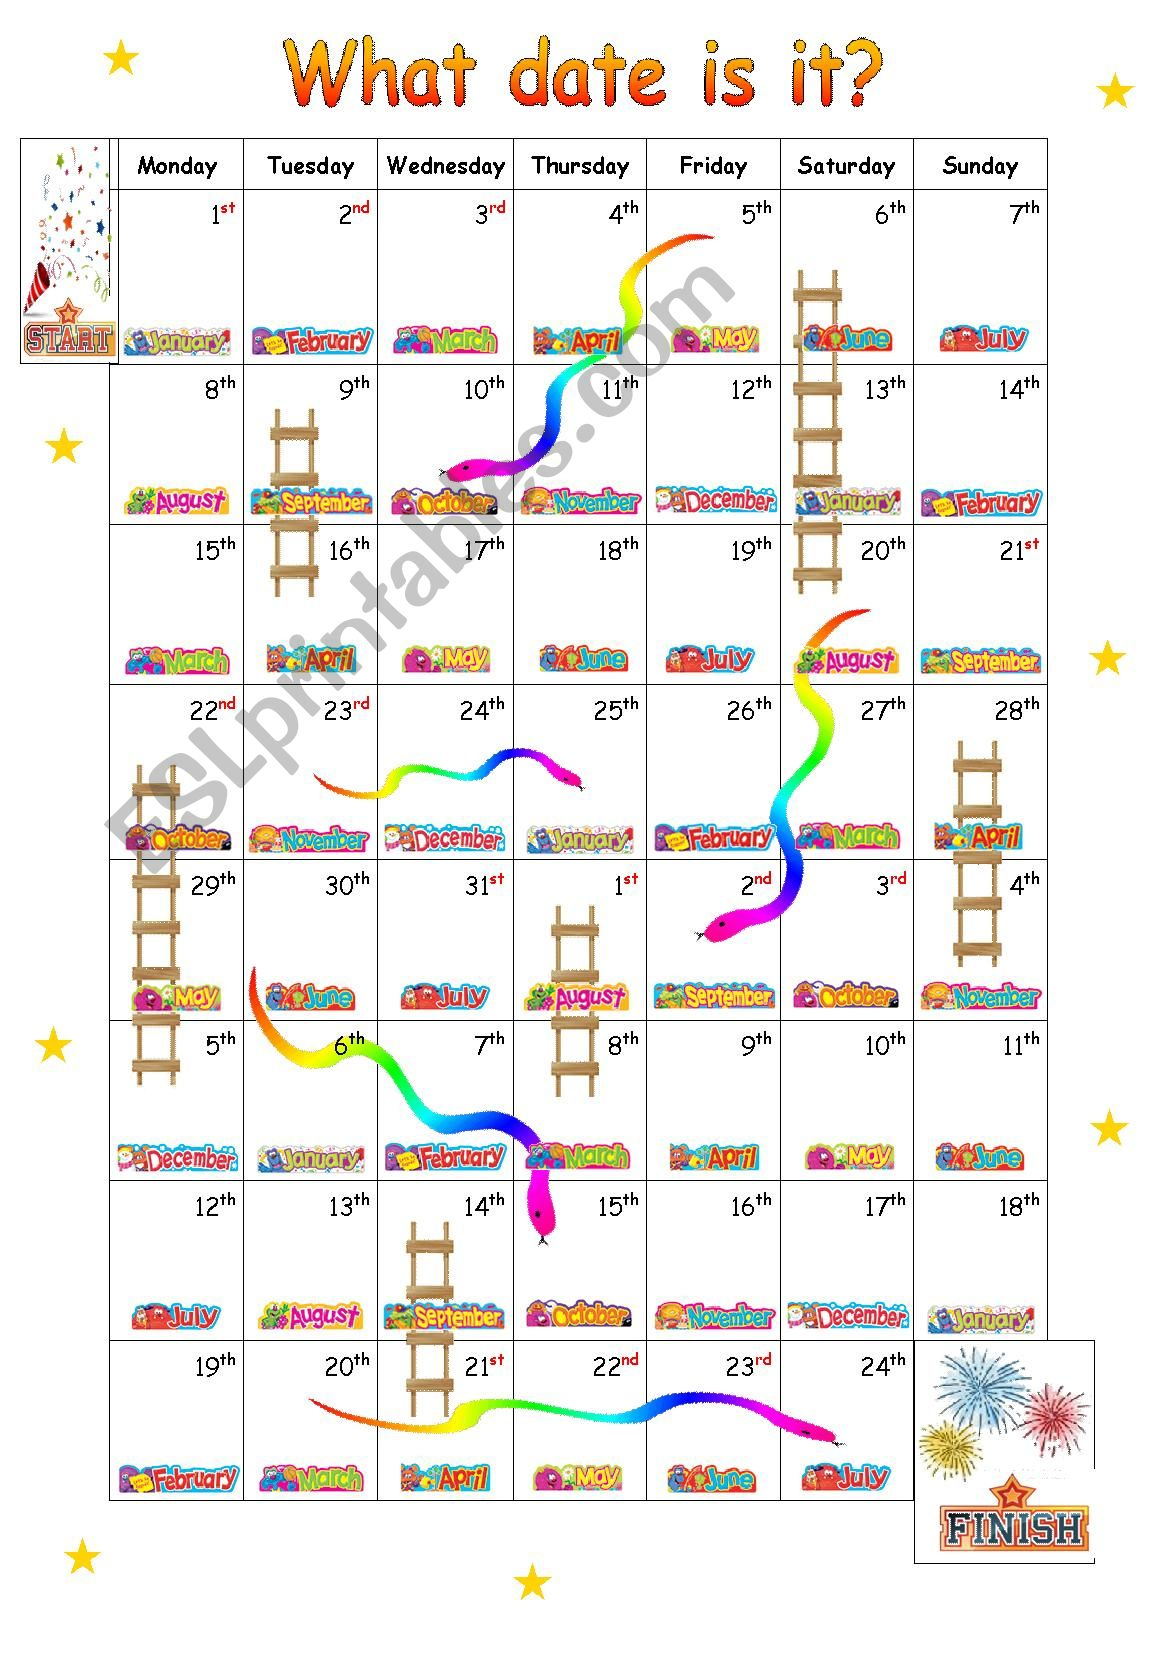 What date is it?  Snakes and Ladders